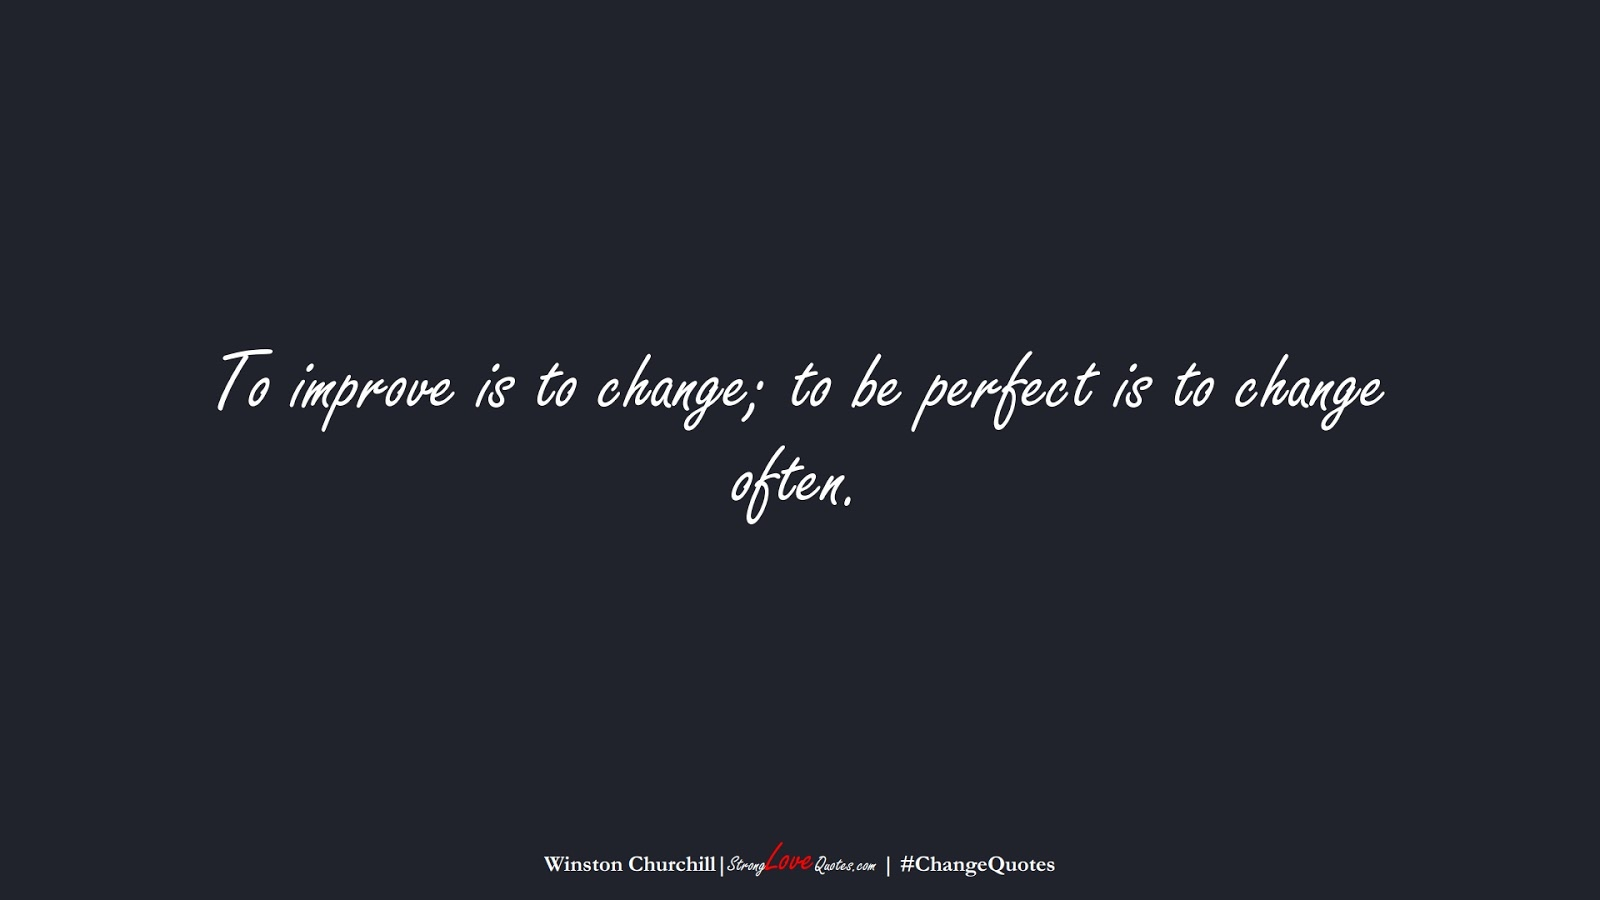 To improve is to change; to be perfect is to change often. (Winston Churchill);  #ChangeQuotes